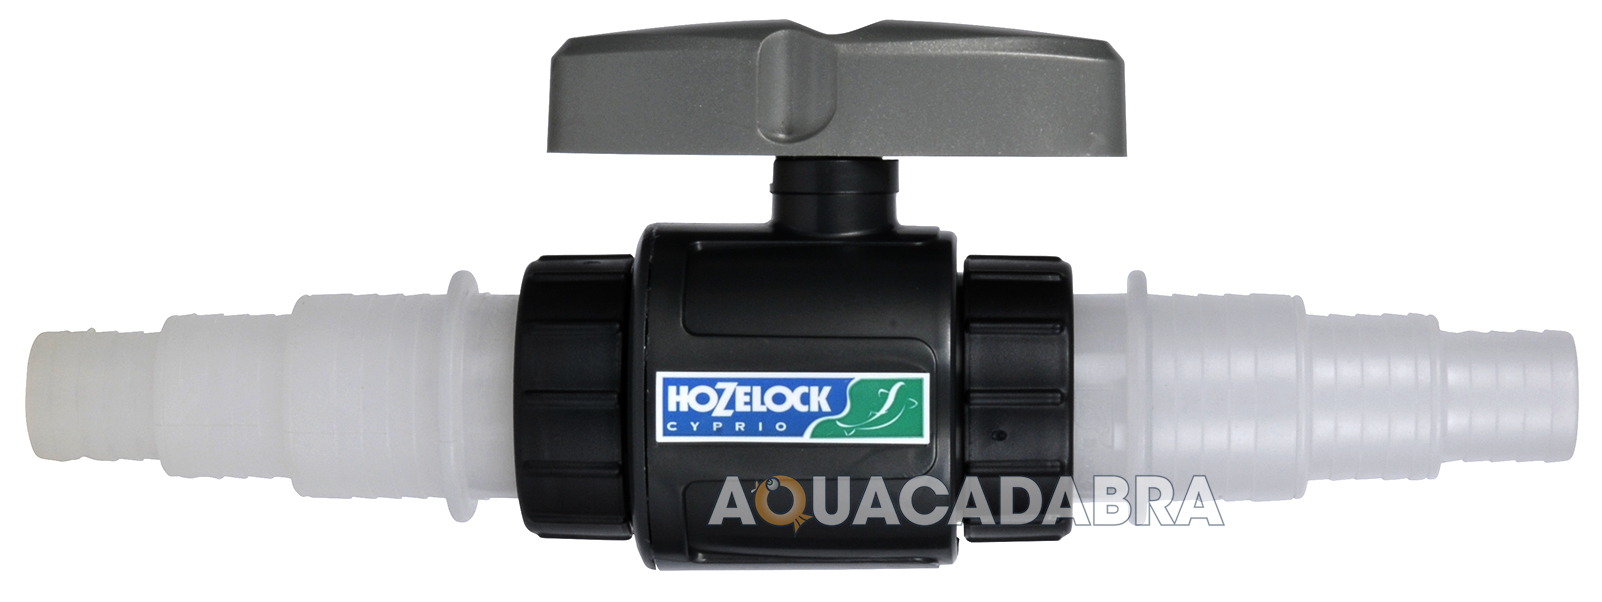 Hozelock flow control valve water straight tap conector for Inline pond filter